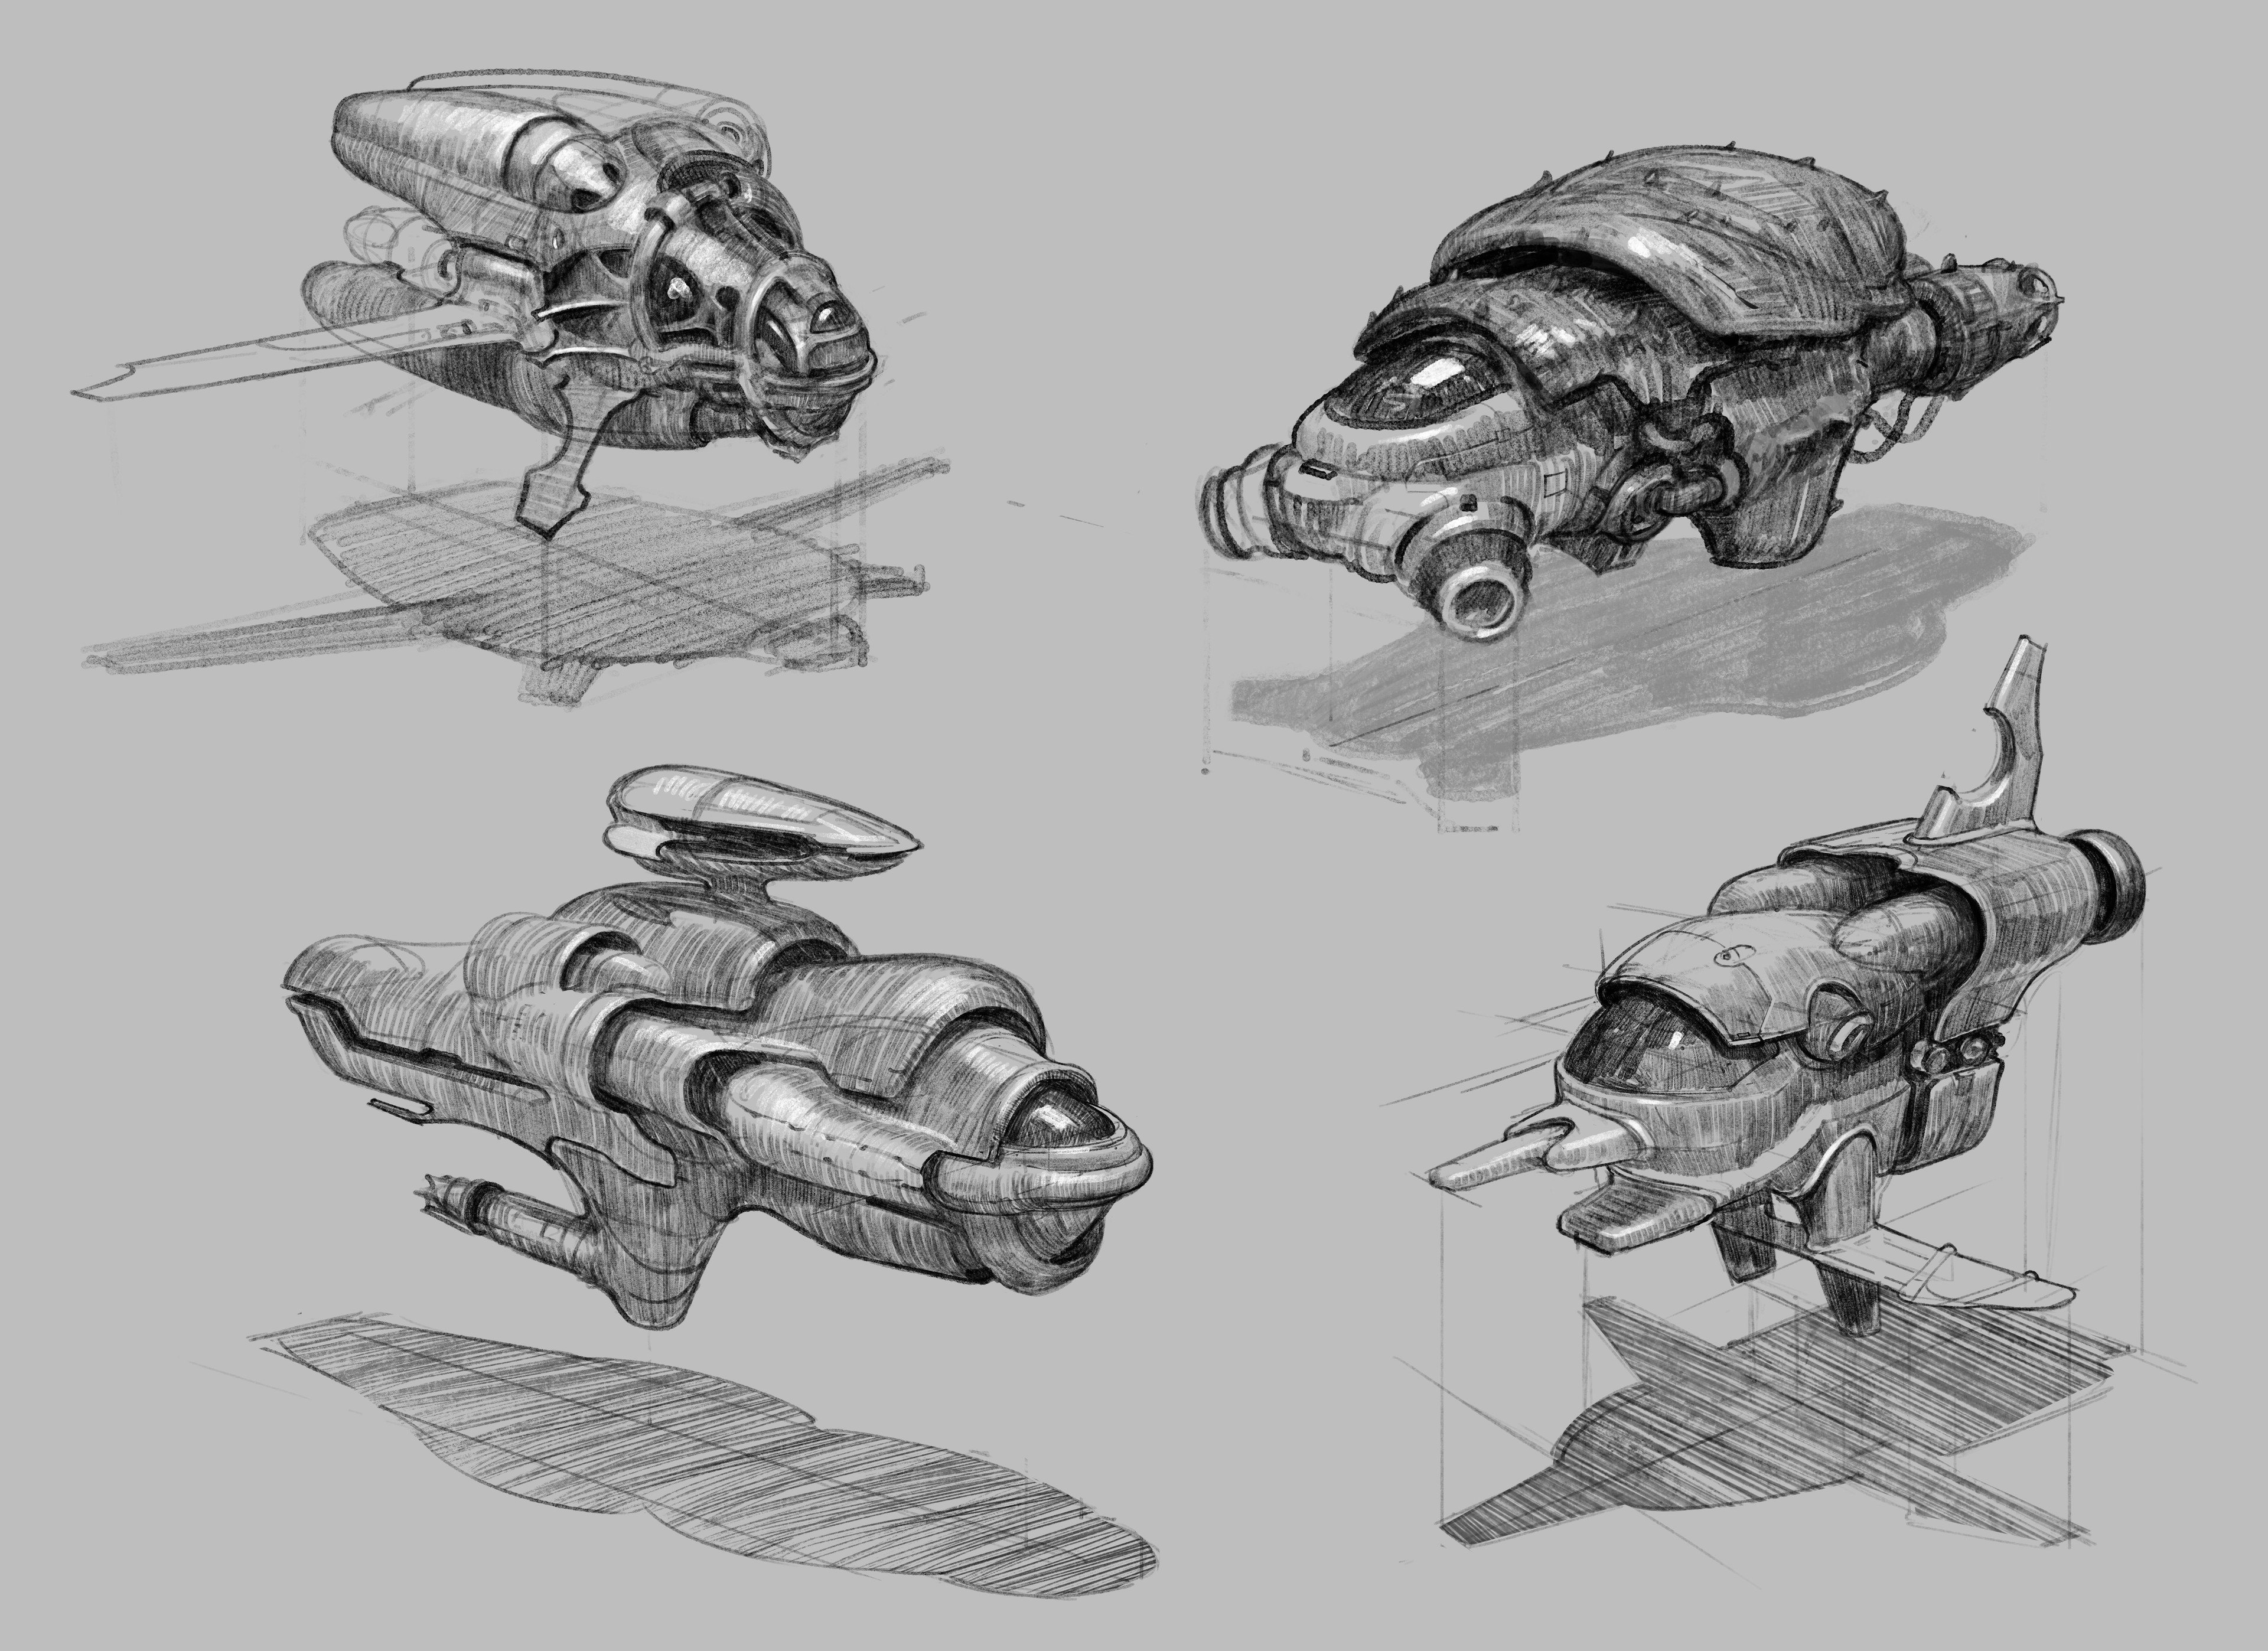 I imagine a lot of the ships would be inspired by beetles. They hooks on the legs of insects are already reminiscent of gothic crockets.